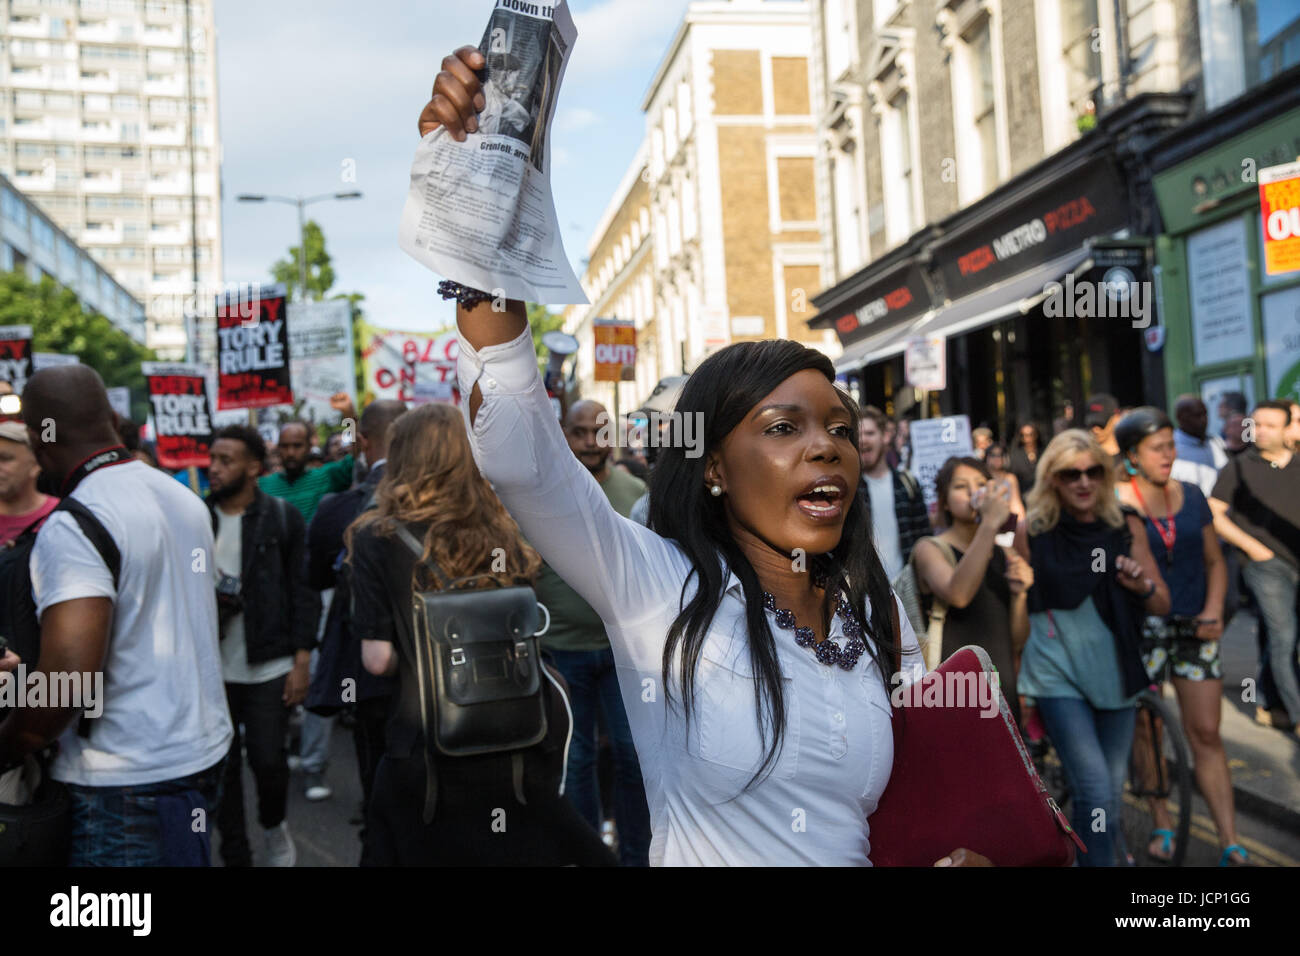 London, UK. 16th June, 2017. Members of the community of North Kensington take part in a protest march to demand - Stock Image